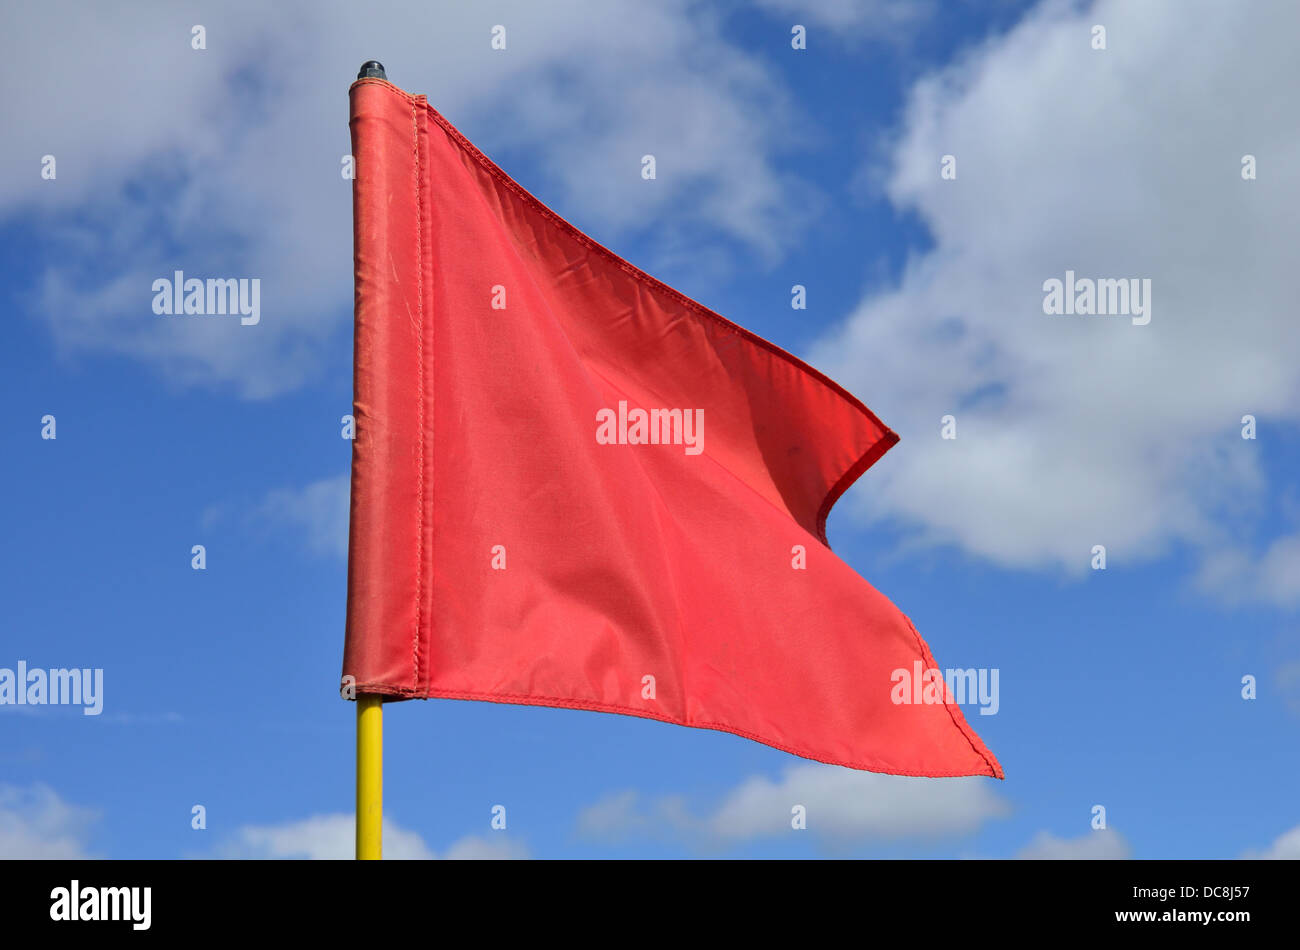 Red flag flying - Stock Image